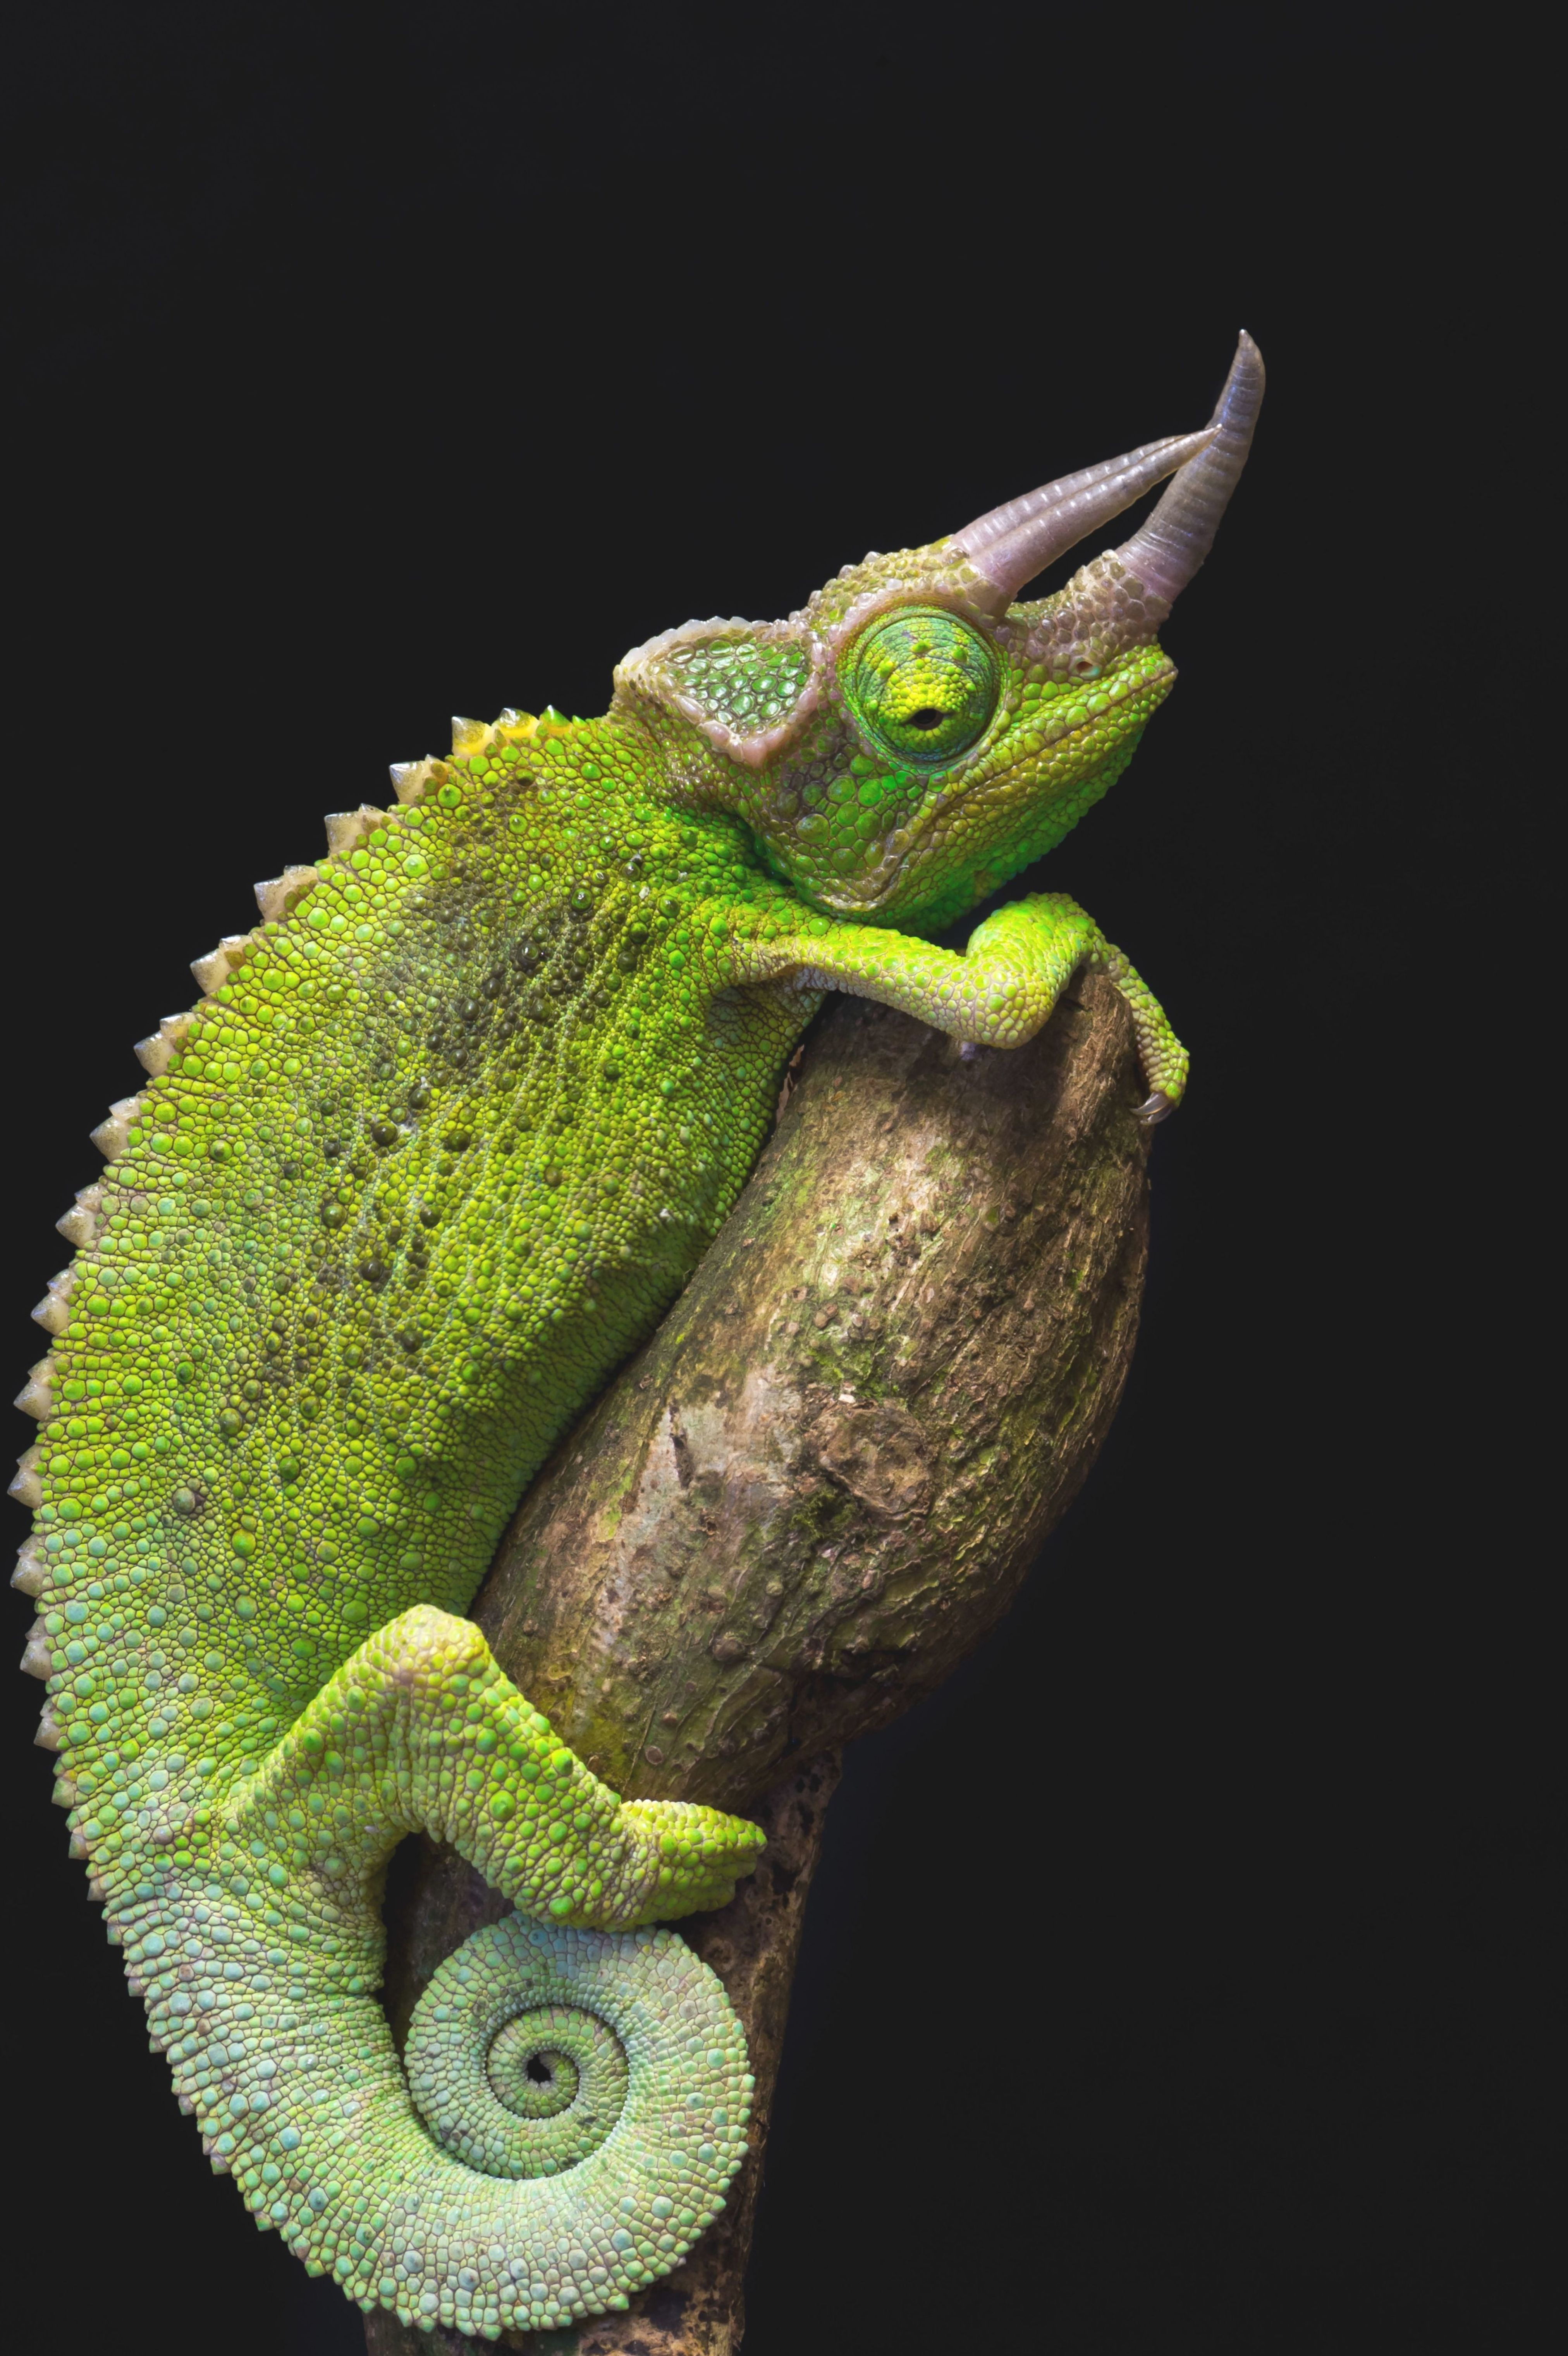 89b8118031418fc1c1d210d5234d5961 - How To Get A Chameleon To Open Its Mouth